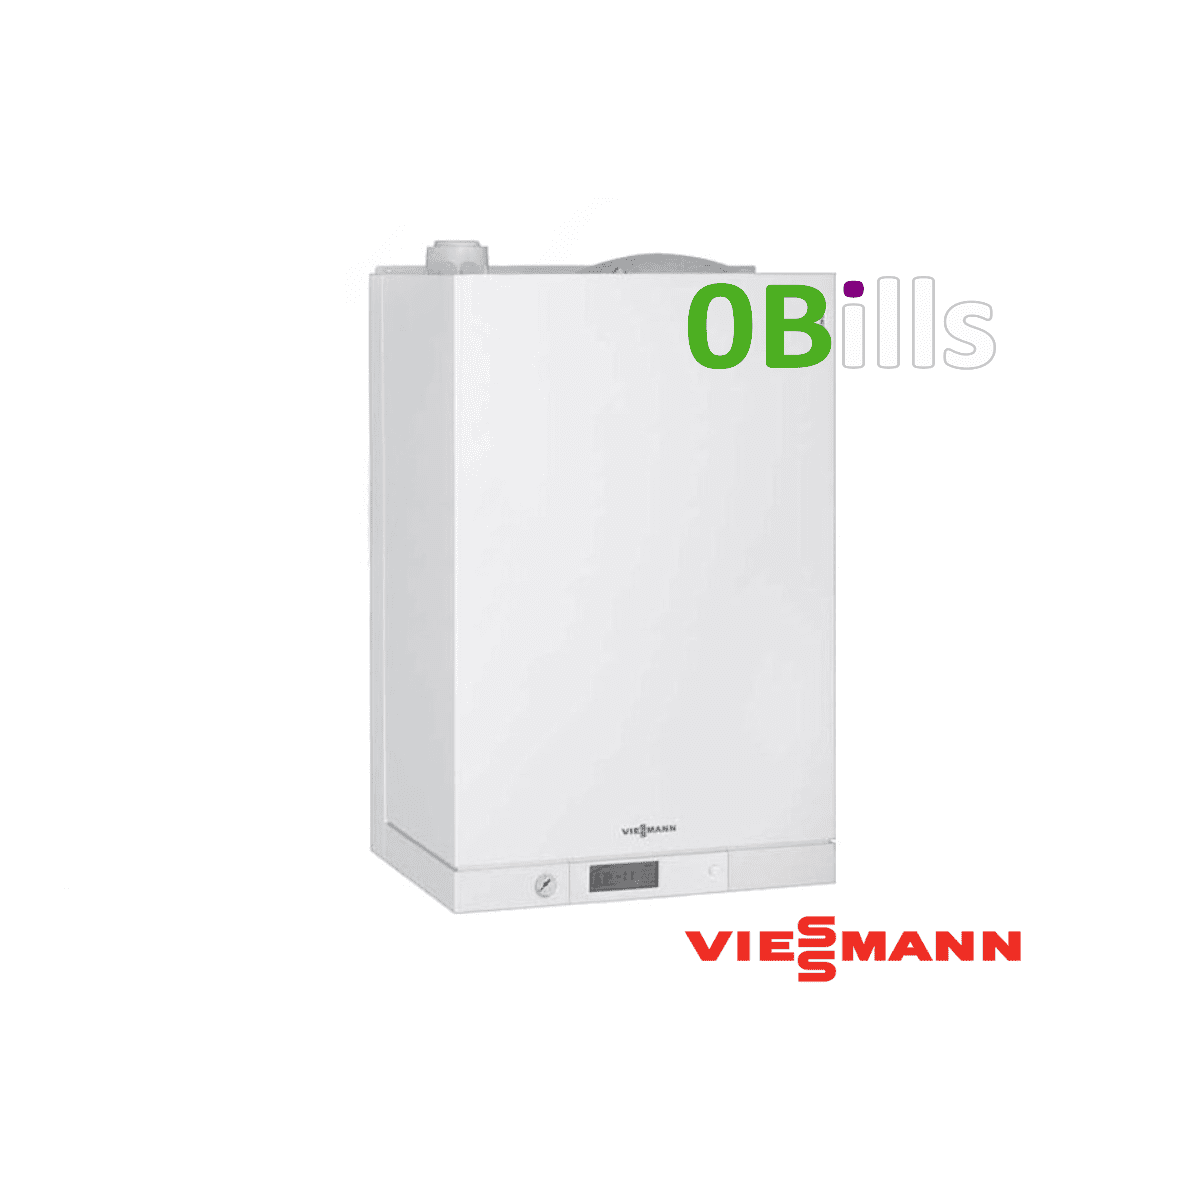 VIESSMANN Vitodens 111-W 26kW Combi Boiler with integrated cylinder for sale